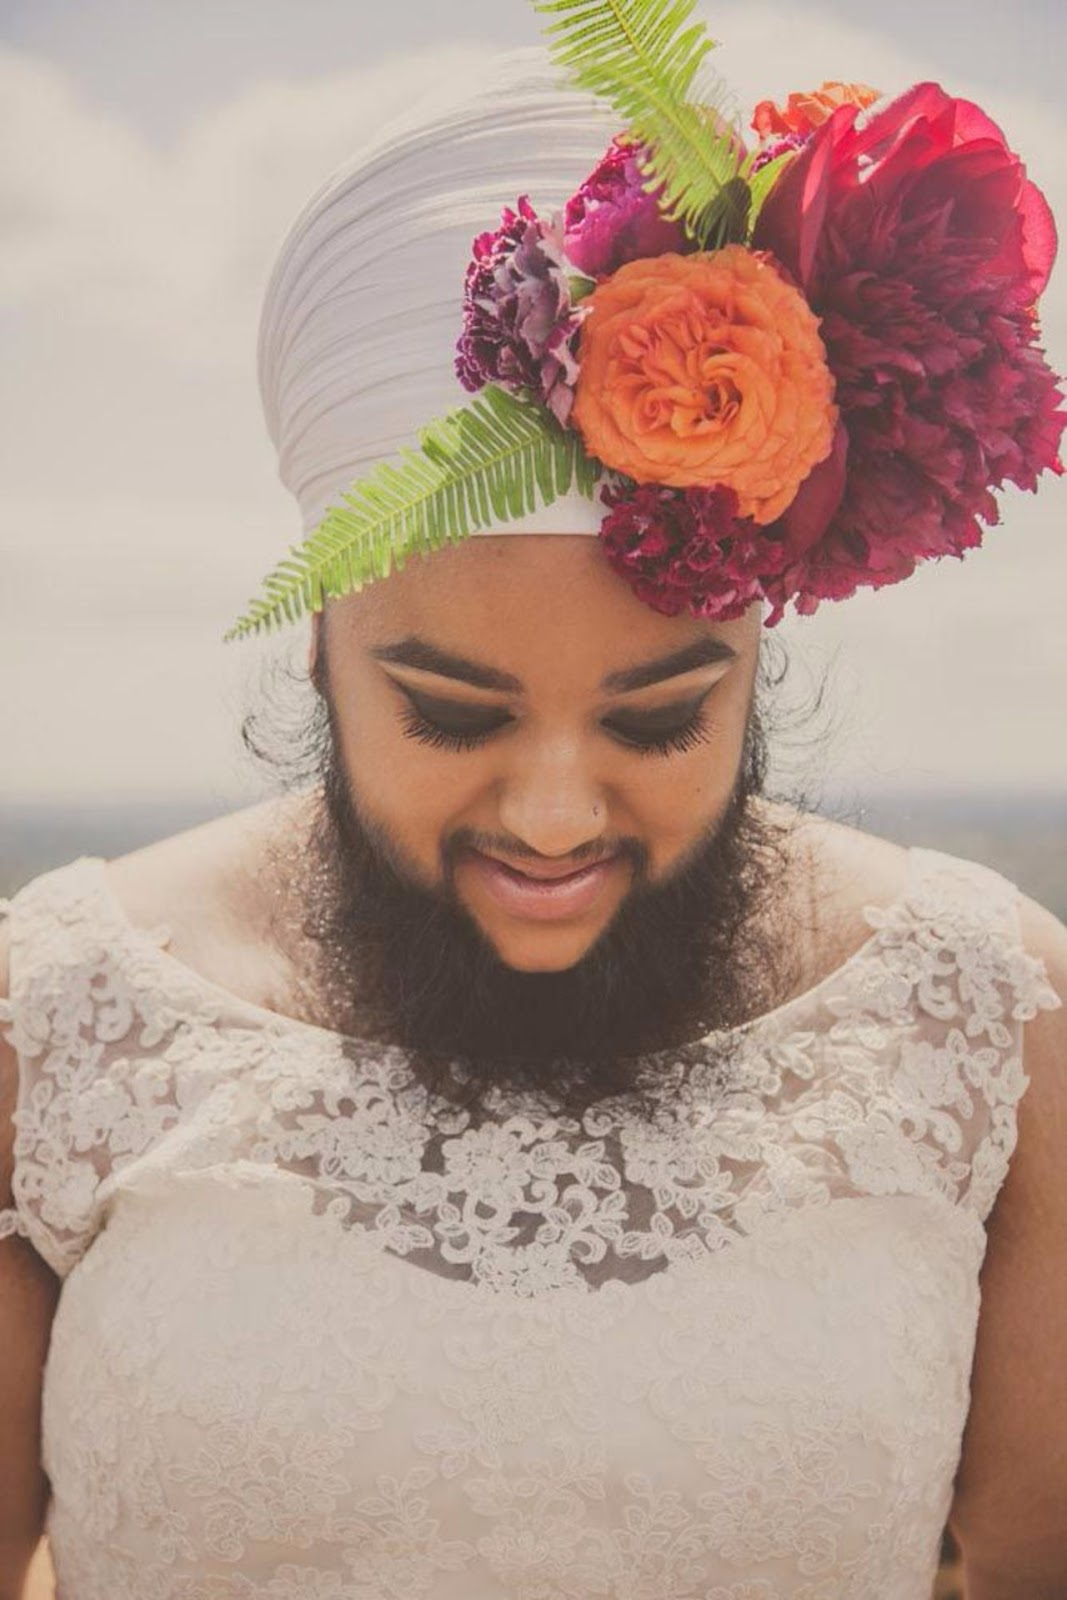 imperfectly_perfect_harnaam_kaur_has_changed_the_definition_of_beauty_04